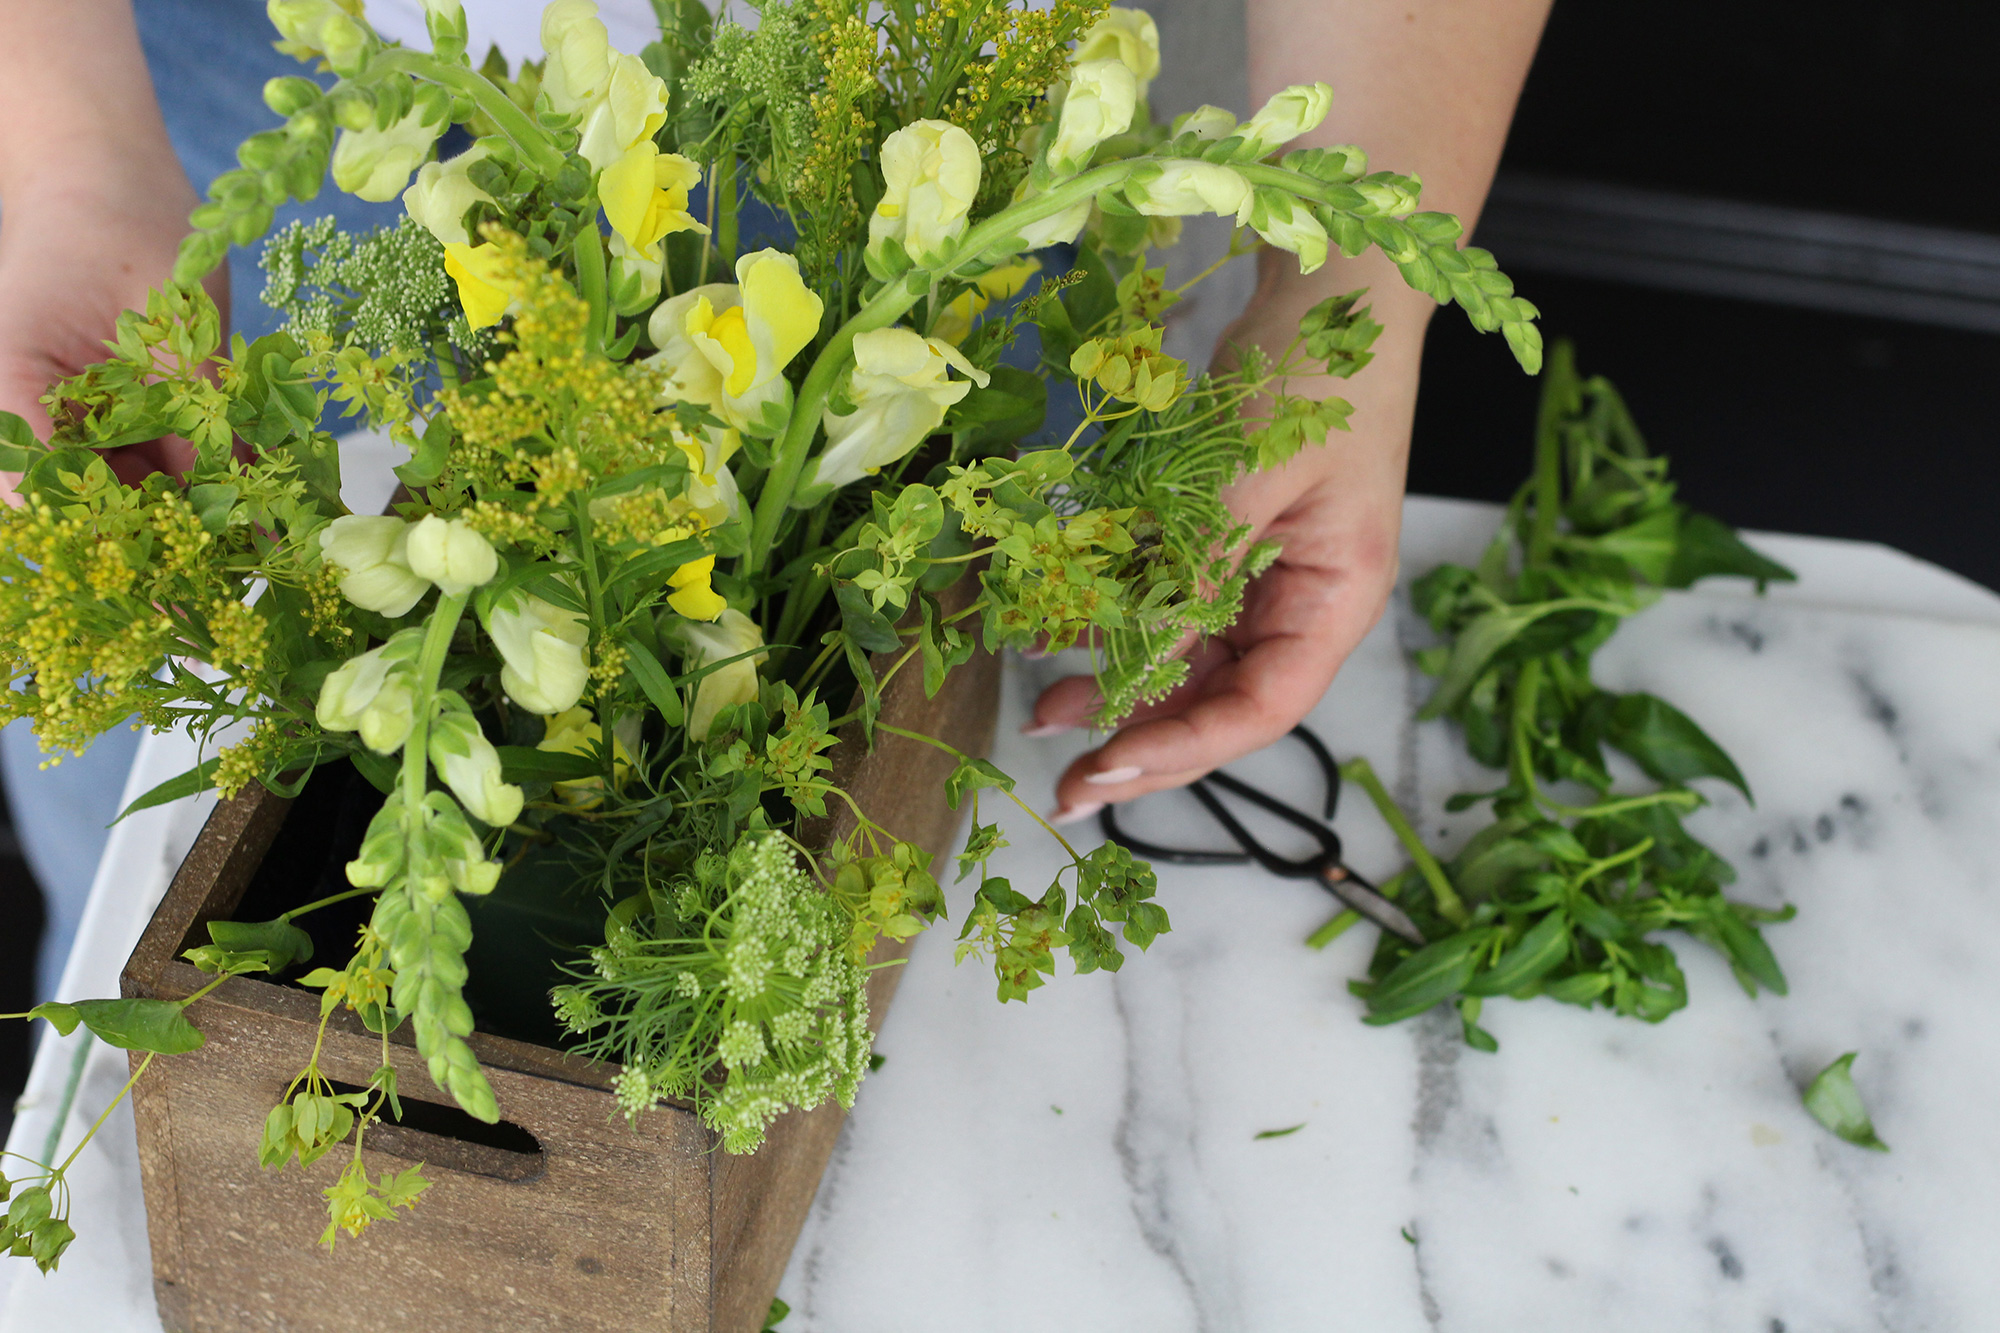 Create a beautiful end of summer monochromatic floral arrangement using both real and faux flowers